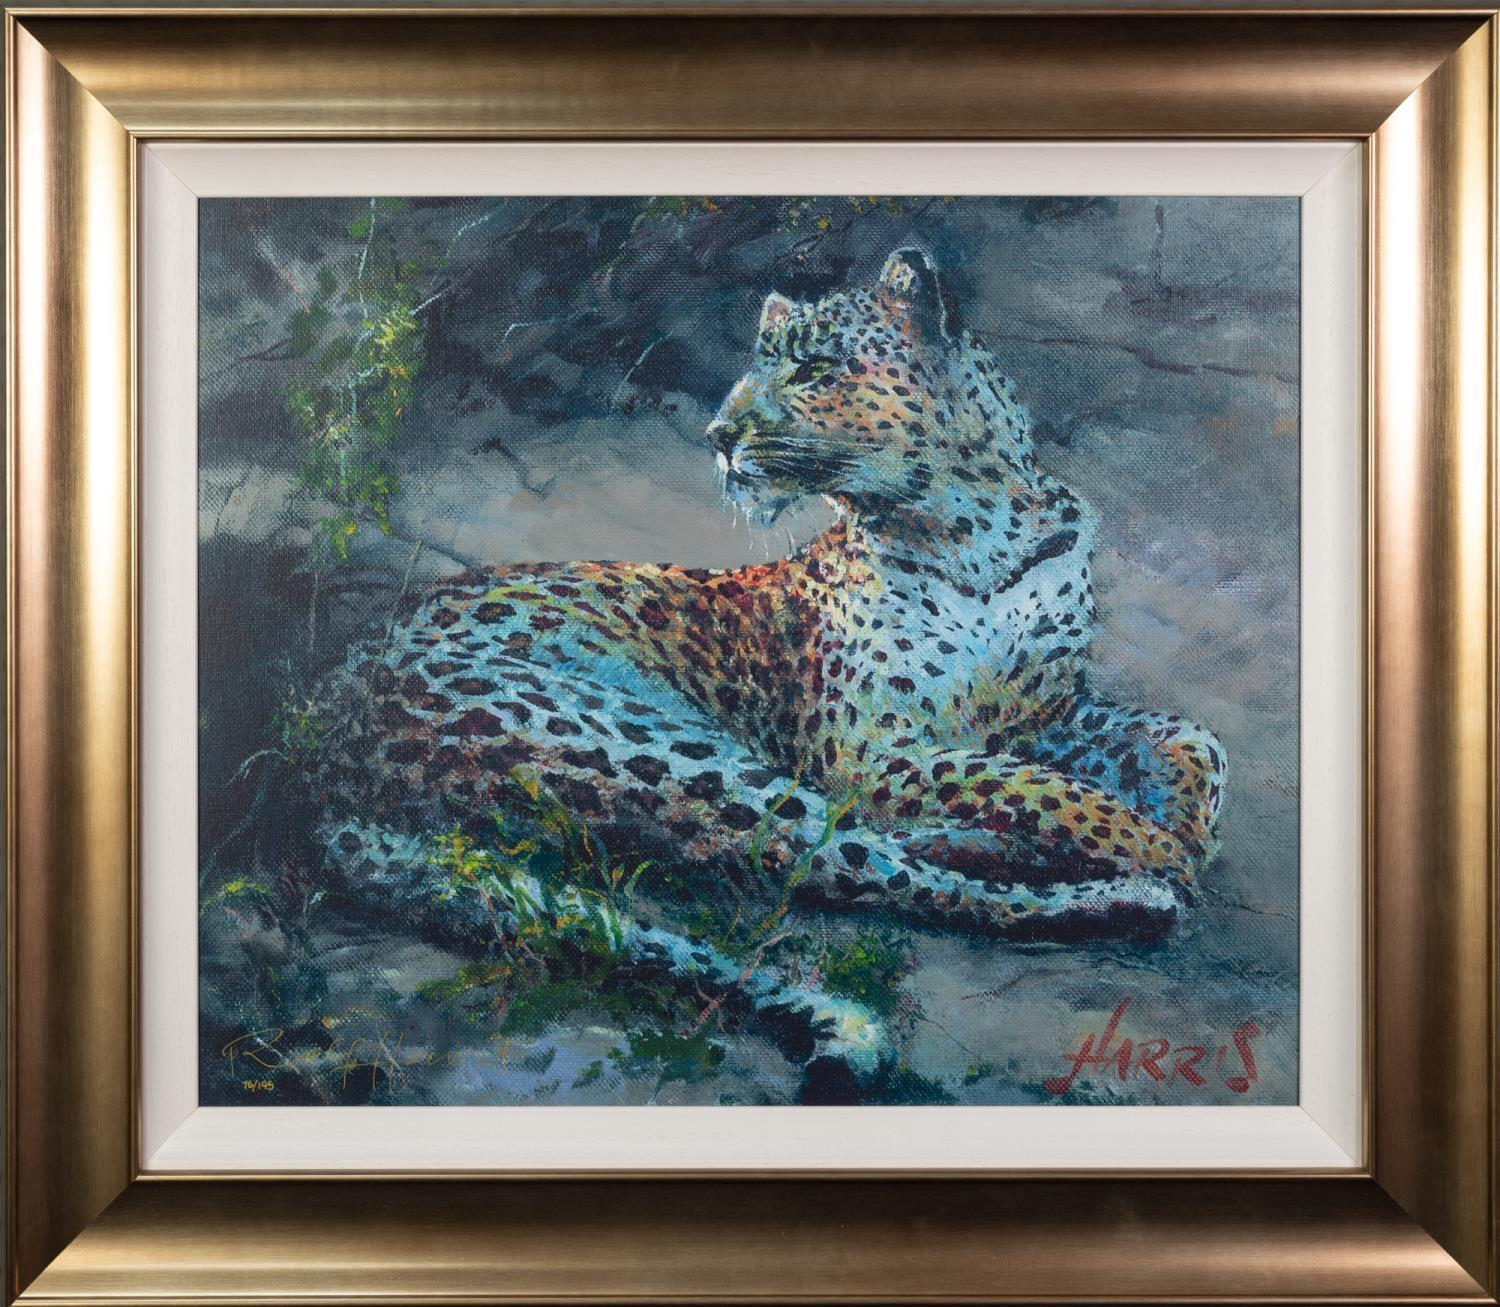 ROLF HARRIS (b.1930) ARTIST SIGNED LIMITED EDITION COLOUR PRINT ON CANVAS ?Leopard Reclining at - Image 2 of 2